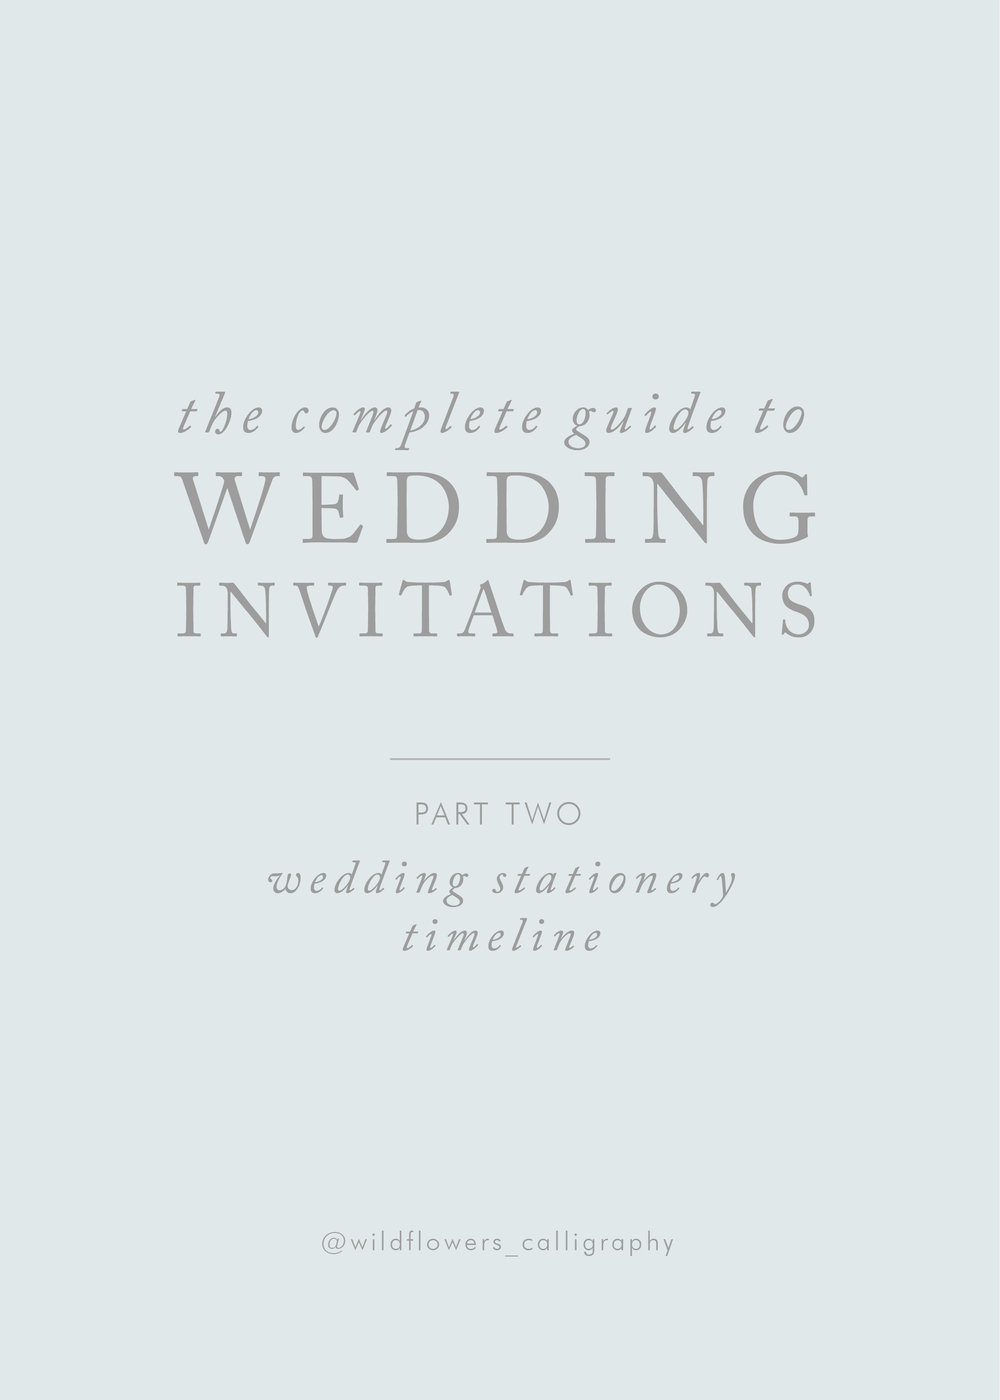 wedding invitation guide -part 2 _timeline-Wildflowers_Calligraphy.jpg